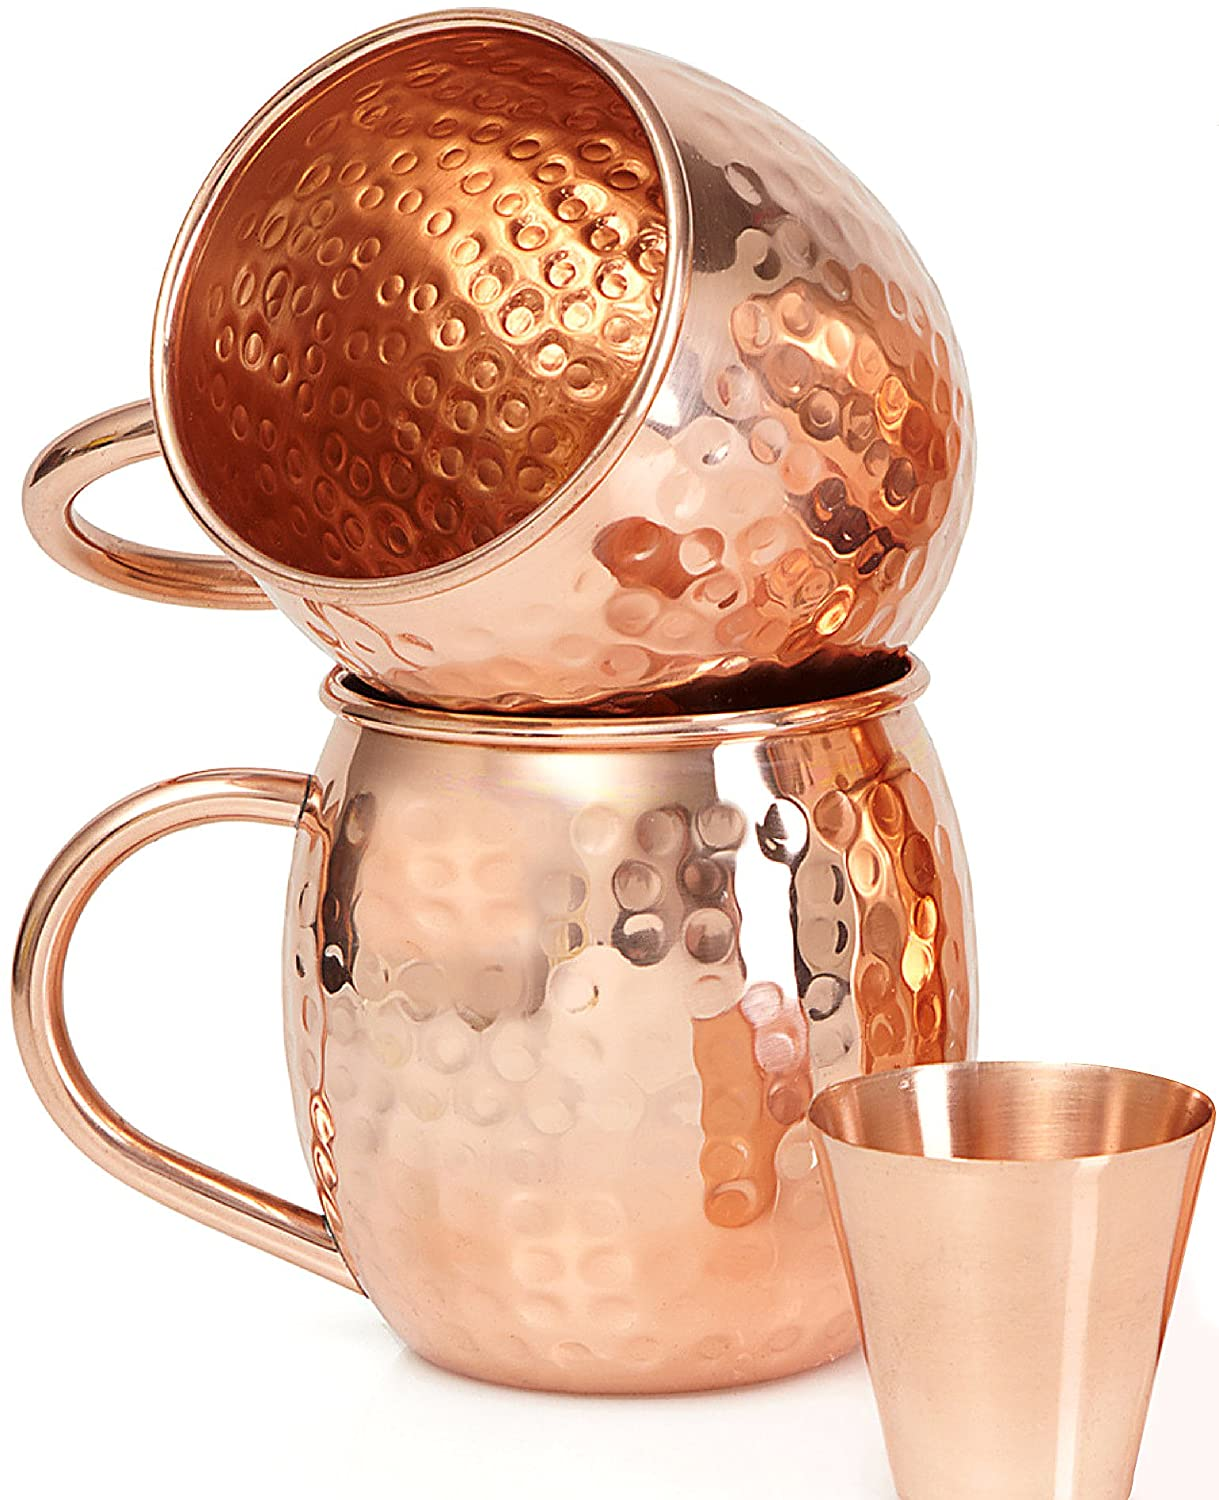 Set of 2 Moscow Mule Copper Mugs with Shot Glass - Two 16 Oz Copper Moscow Mule Mugs - Solid Copper Hammered Mug - Copper Cups for Moscow Mules Willow & Everett SM-003-1716